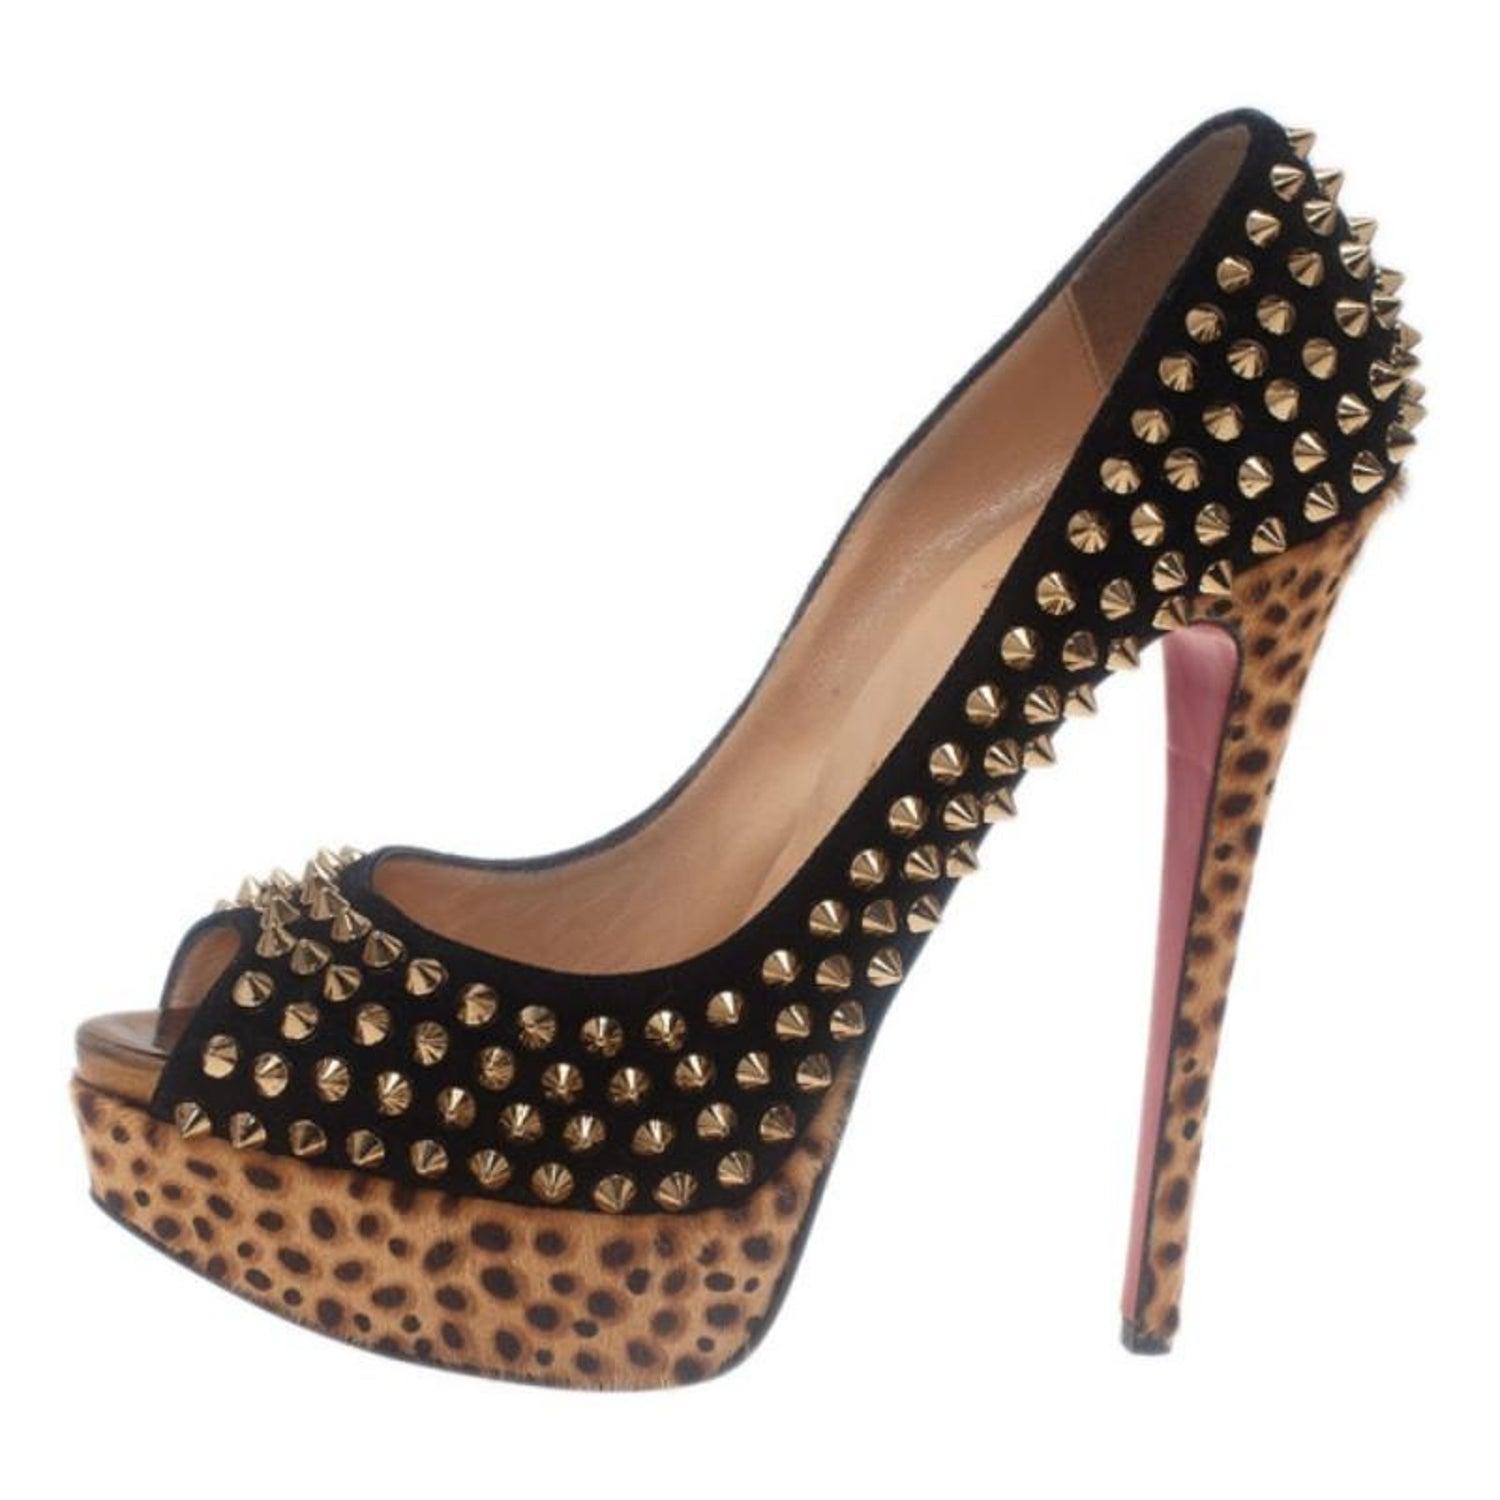 bea7a80ef40 Christian Louboutin Black Suede Leopard Pony Hair Lady Peep Spikes Platform  Pump For Sale at 1stdibs